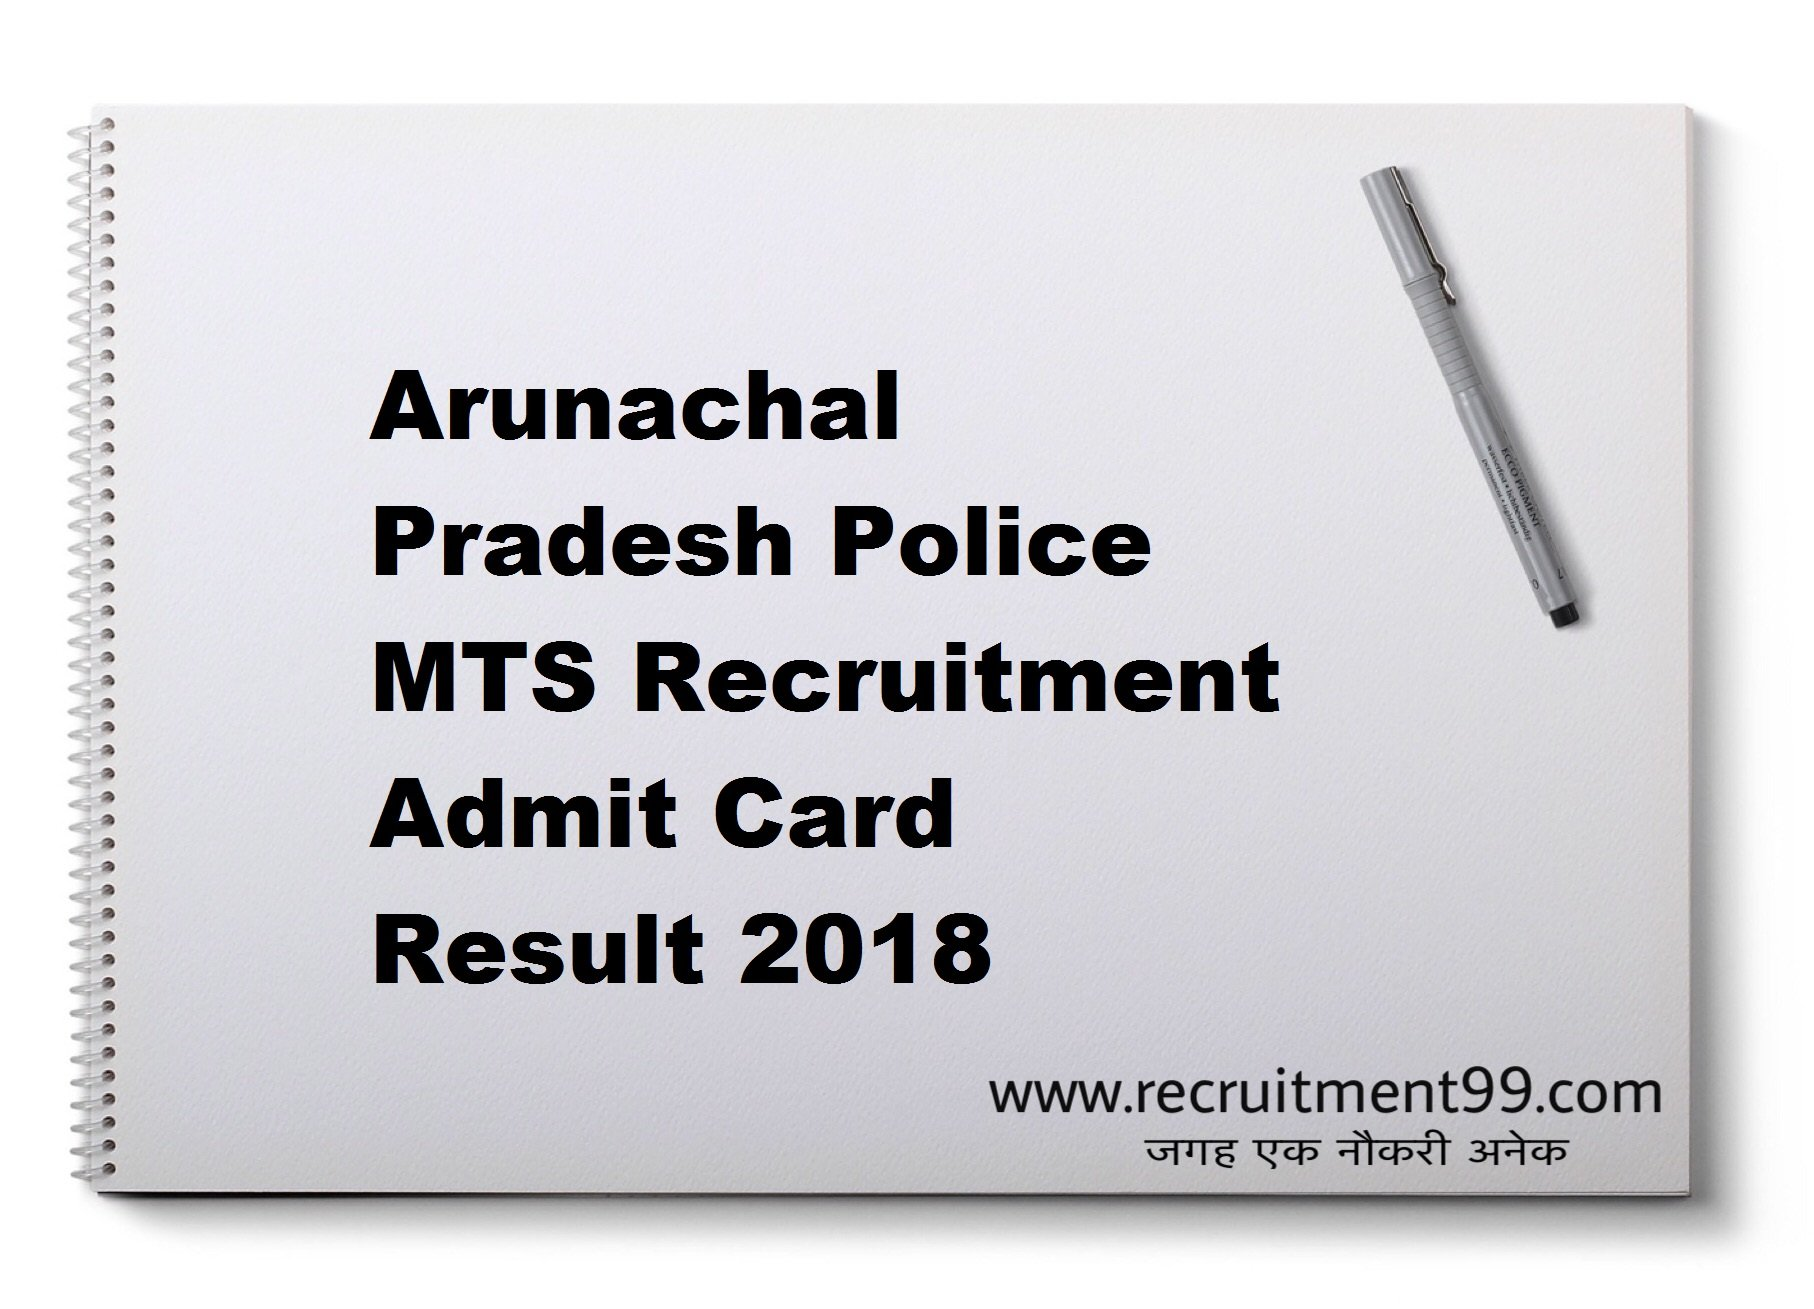 Arunachal Pradesh Police MTS Recruitment Admit Card Result 2018